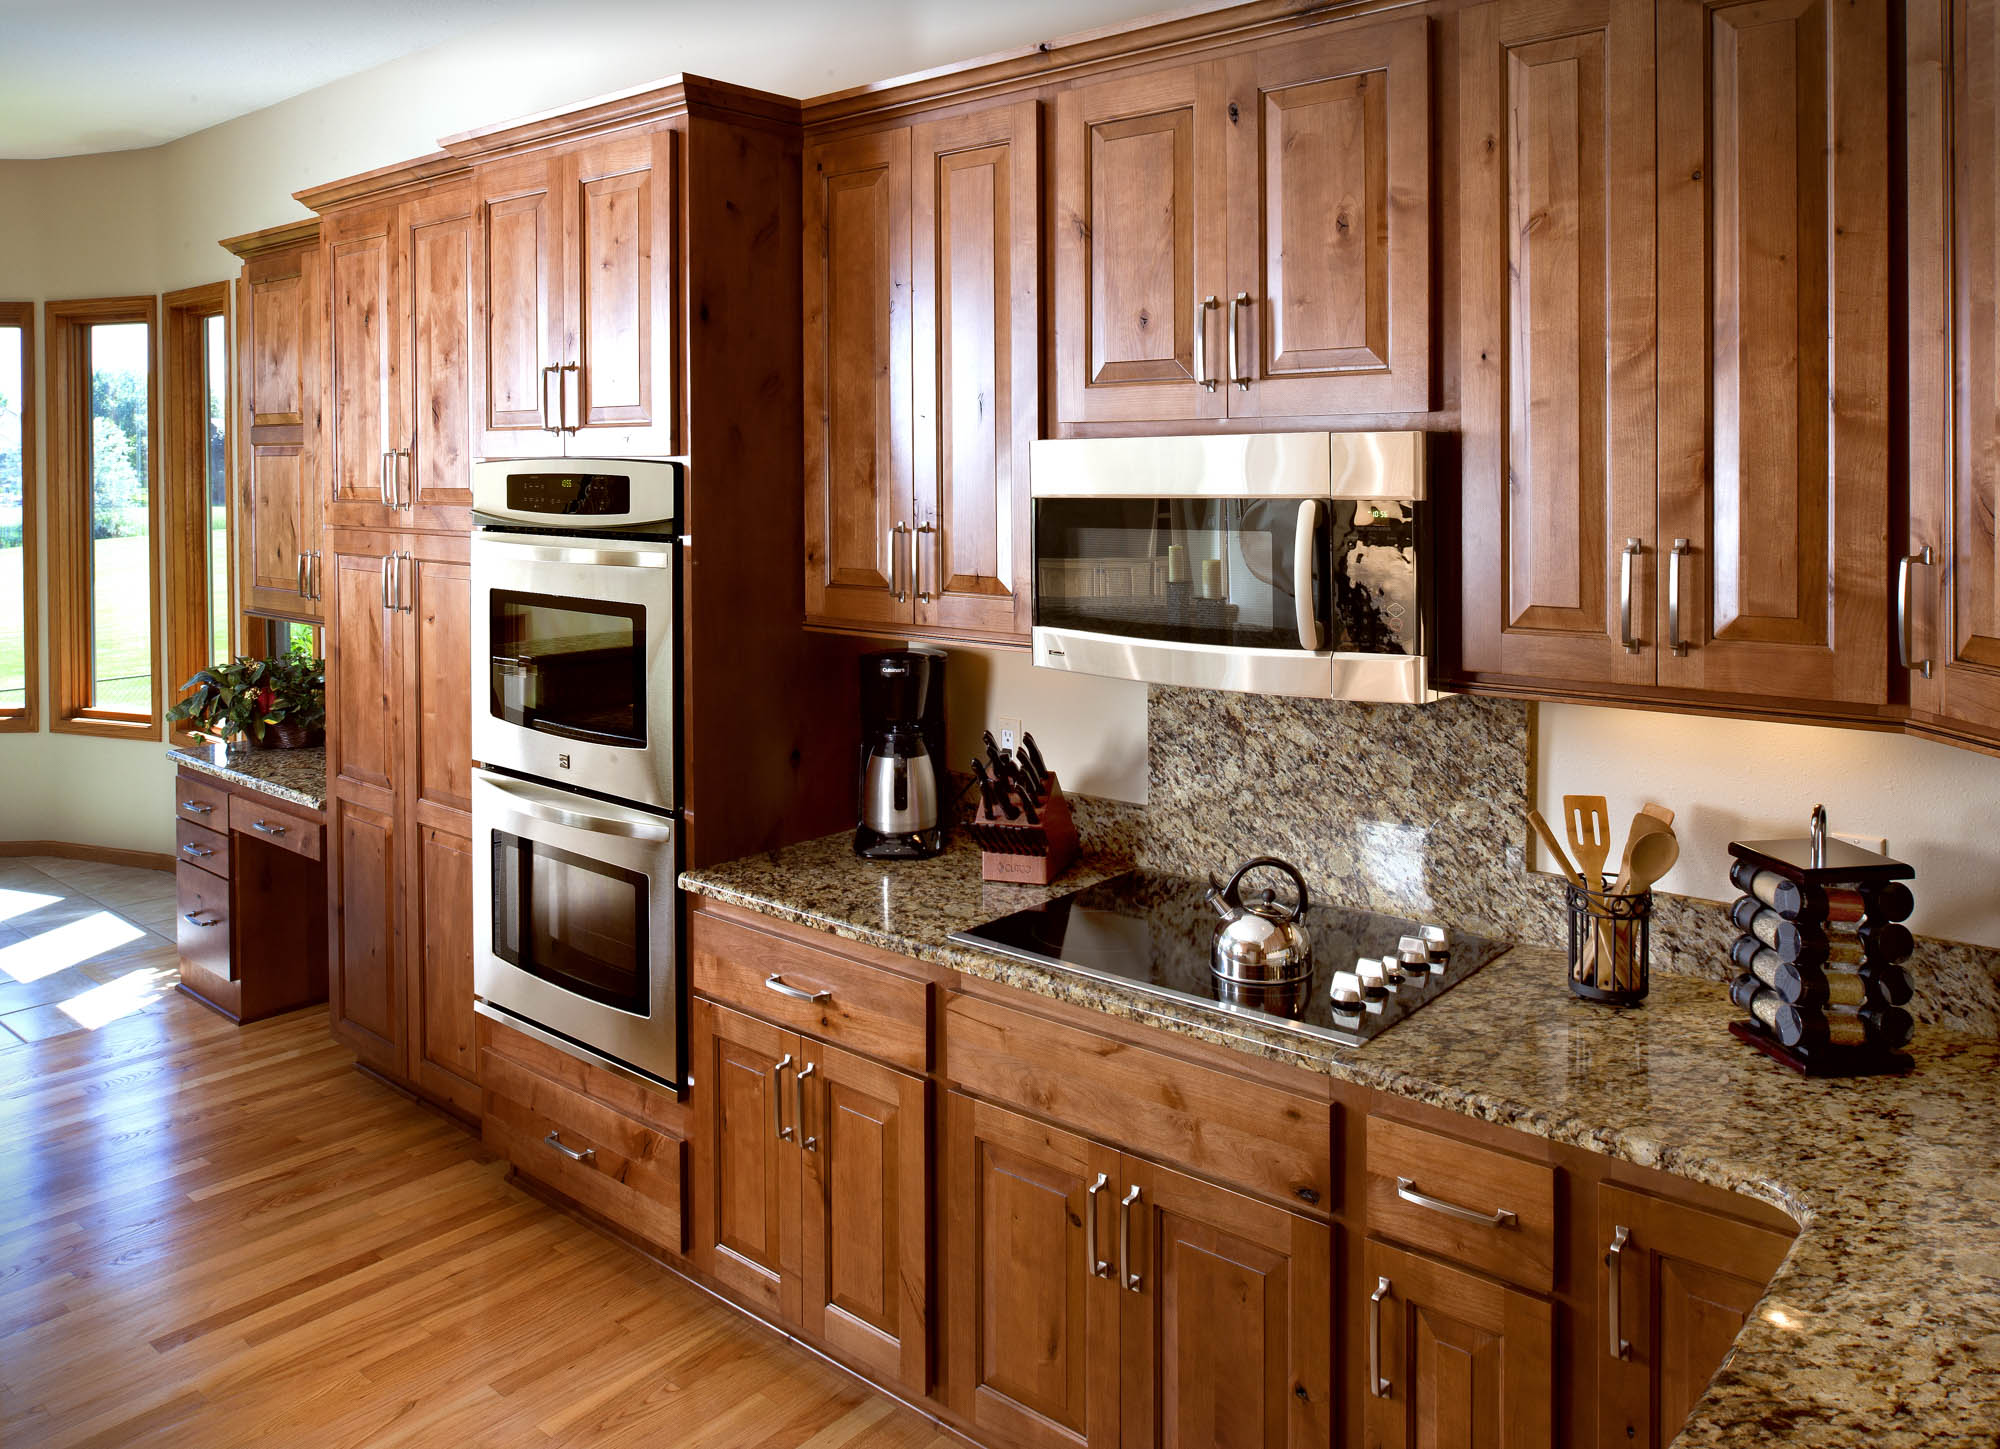 Renew | Stained kitchen cabinets in Nutmeg with Ebony Glaze by Showplace Cabinetry - view 2